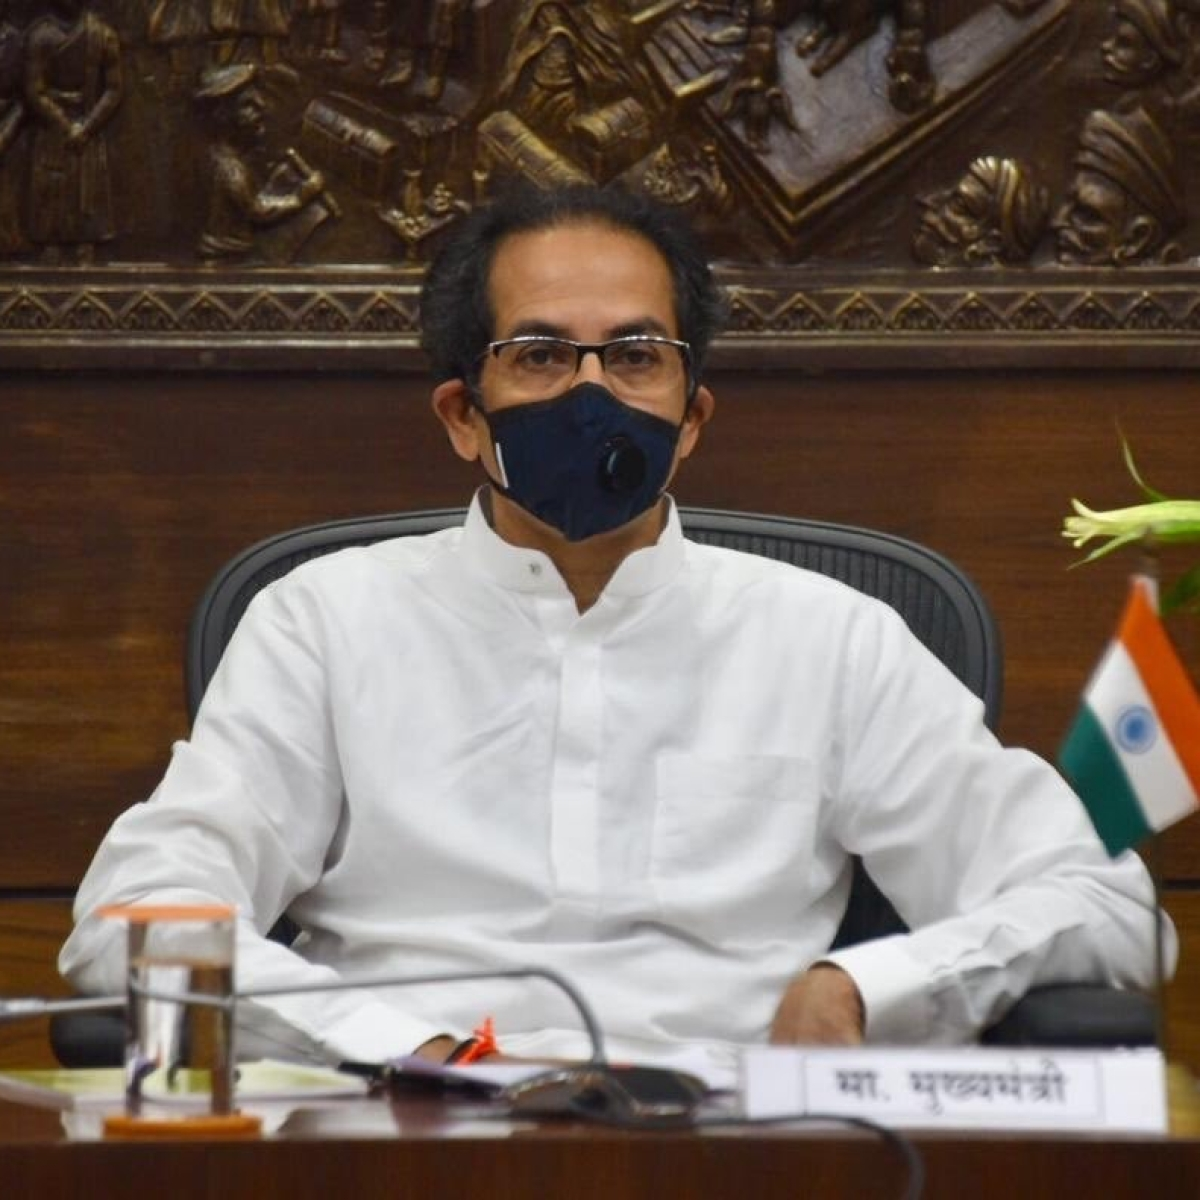 Cyclone Nisarga: Uddhav Thackeray urges people to cooperate; says COVID-19 patients have been shifted to safer places